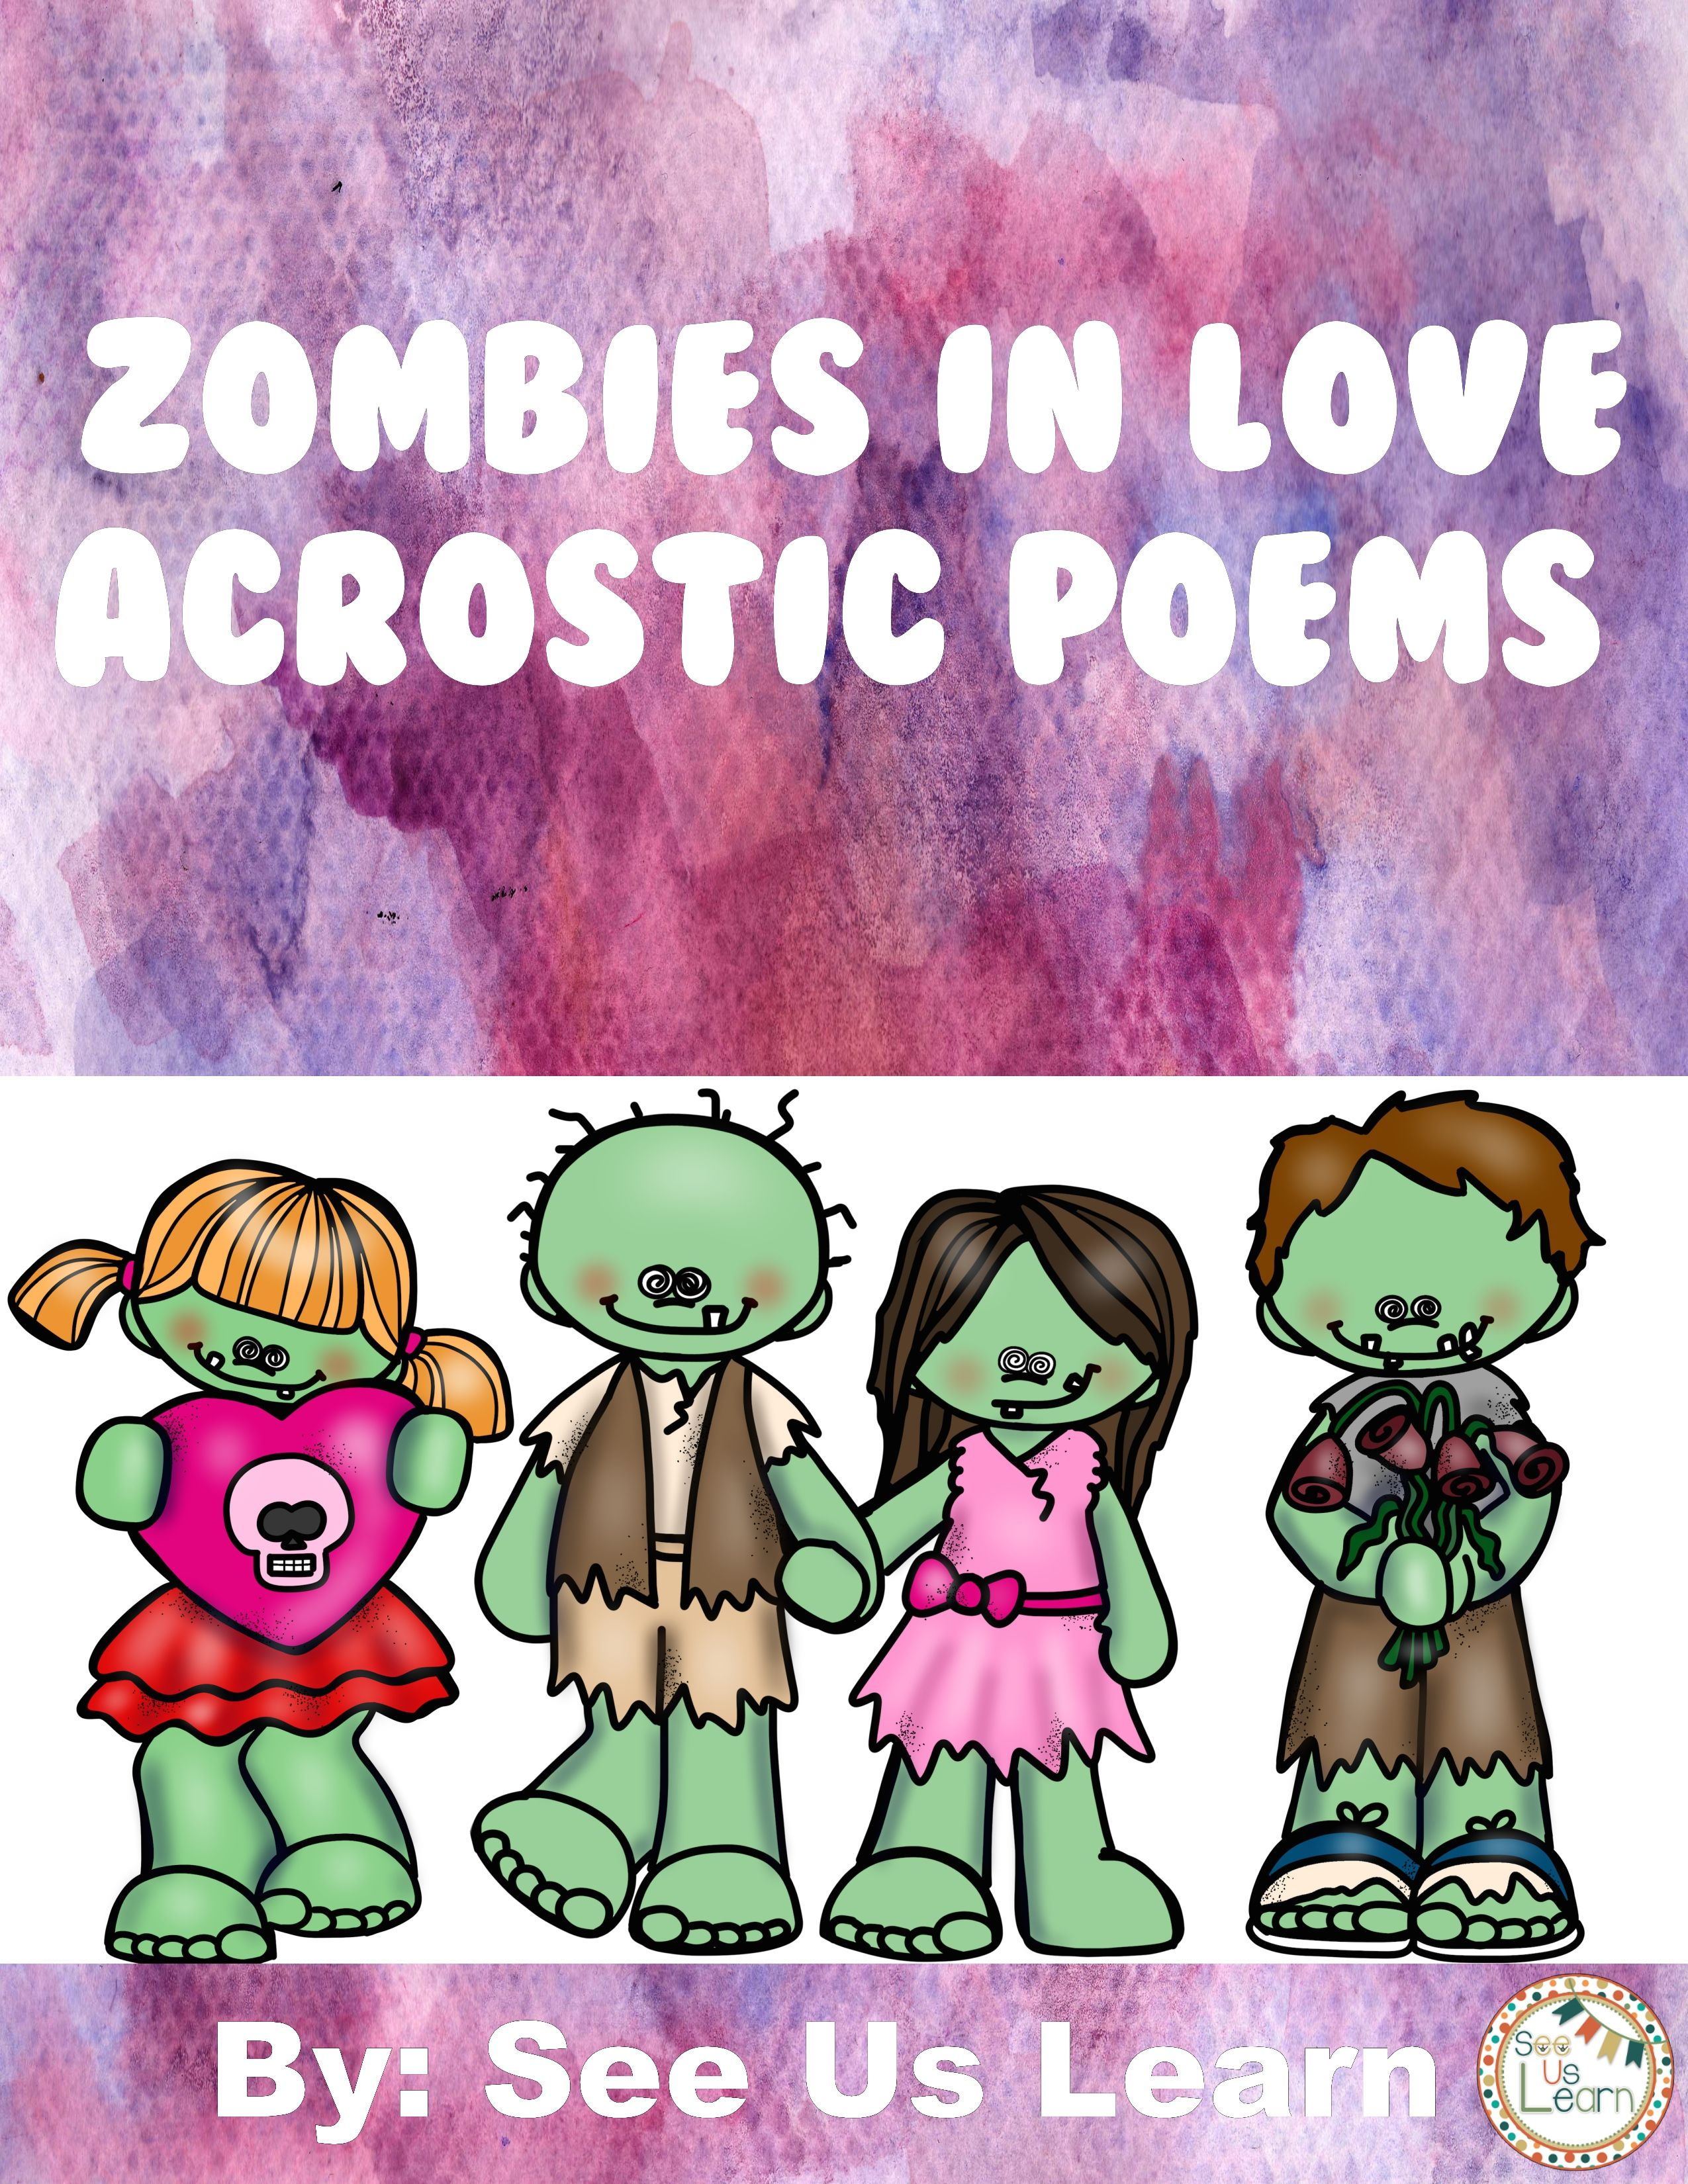 Zombies In Love Acrostic Poems